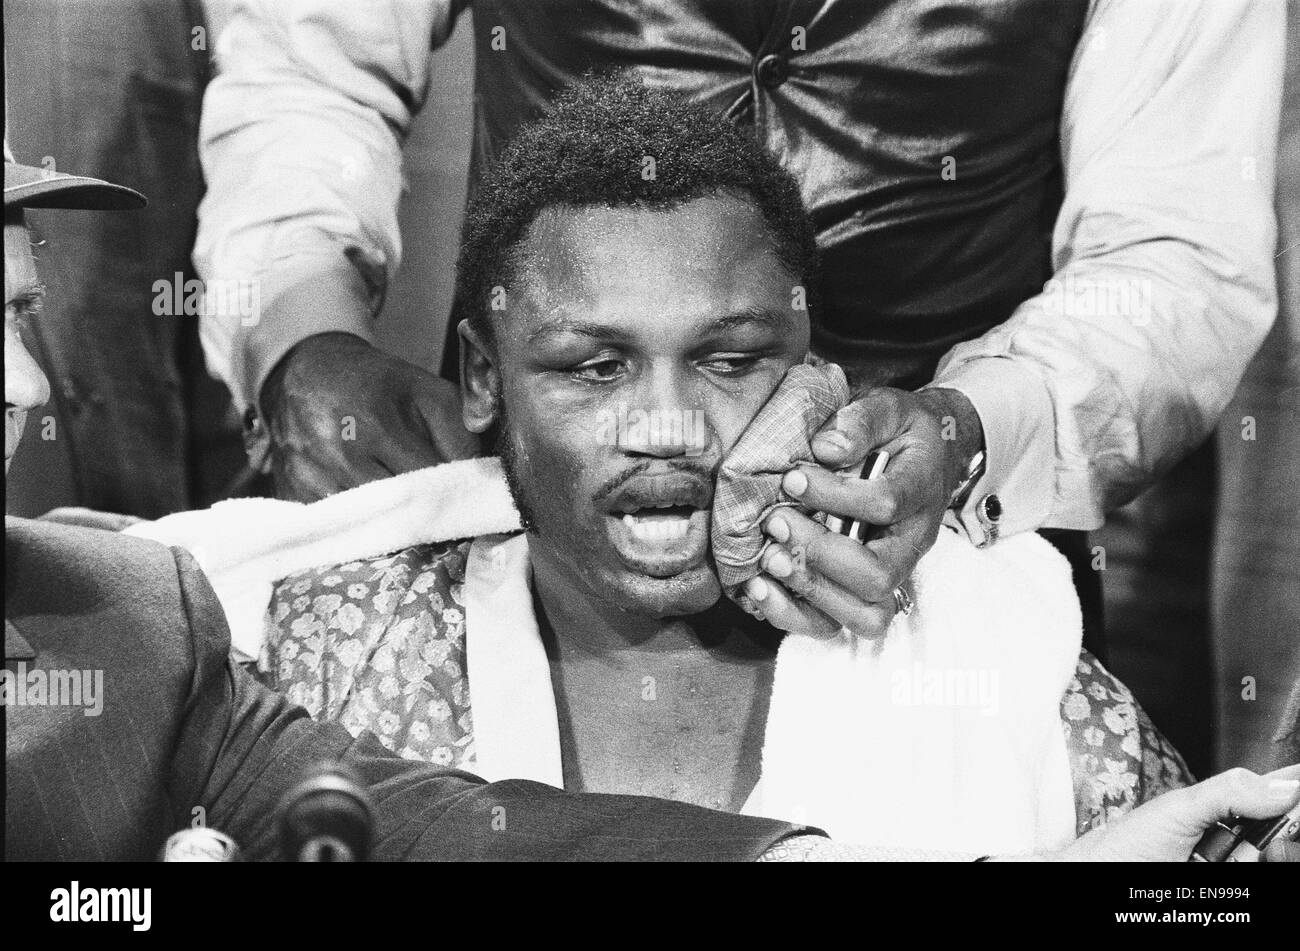 Joe Frazier seen here giving a press conference whilst an aide applies a ice bag to his face to reduce the swelling - Stock Image